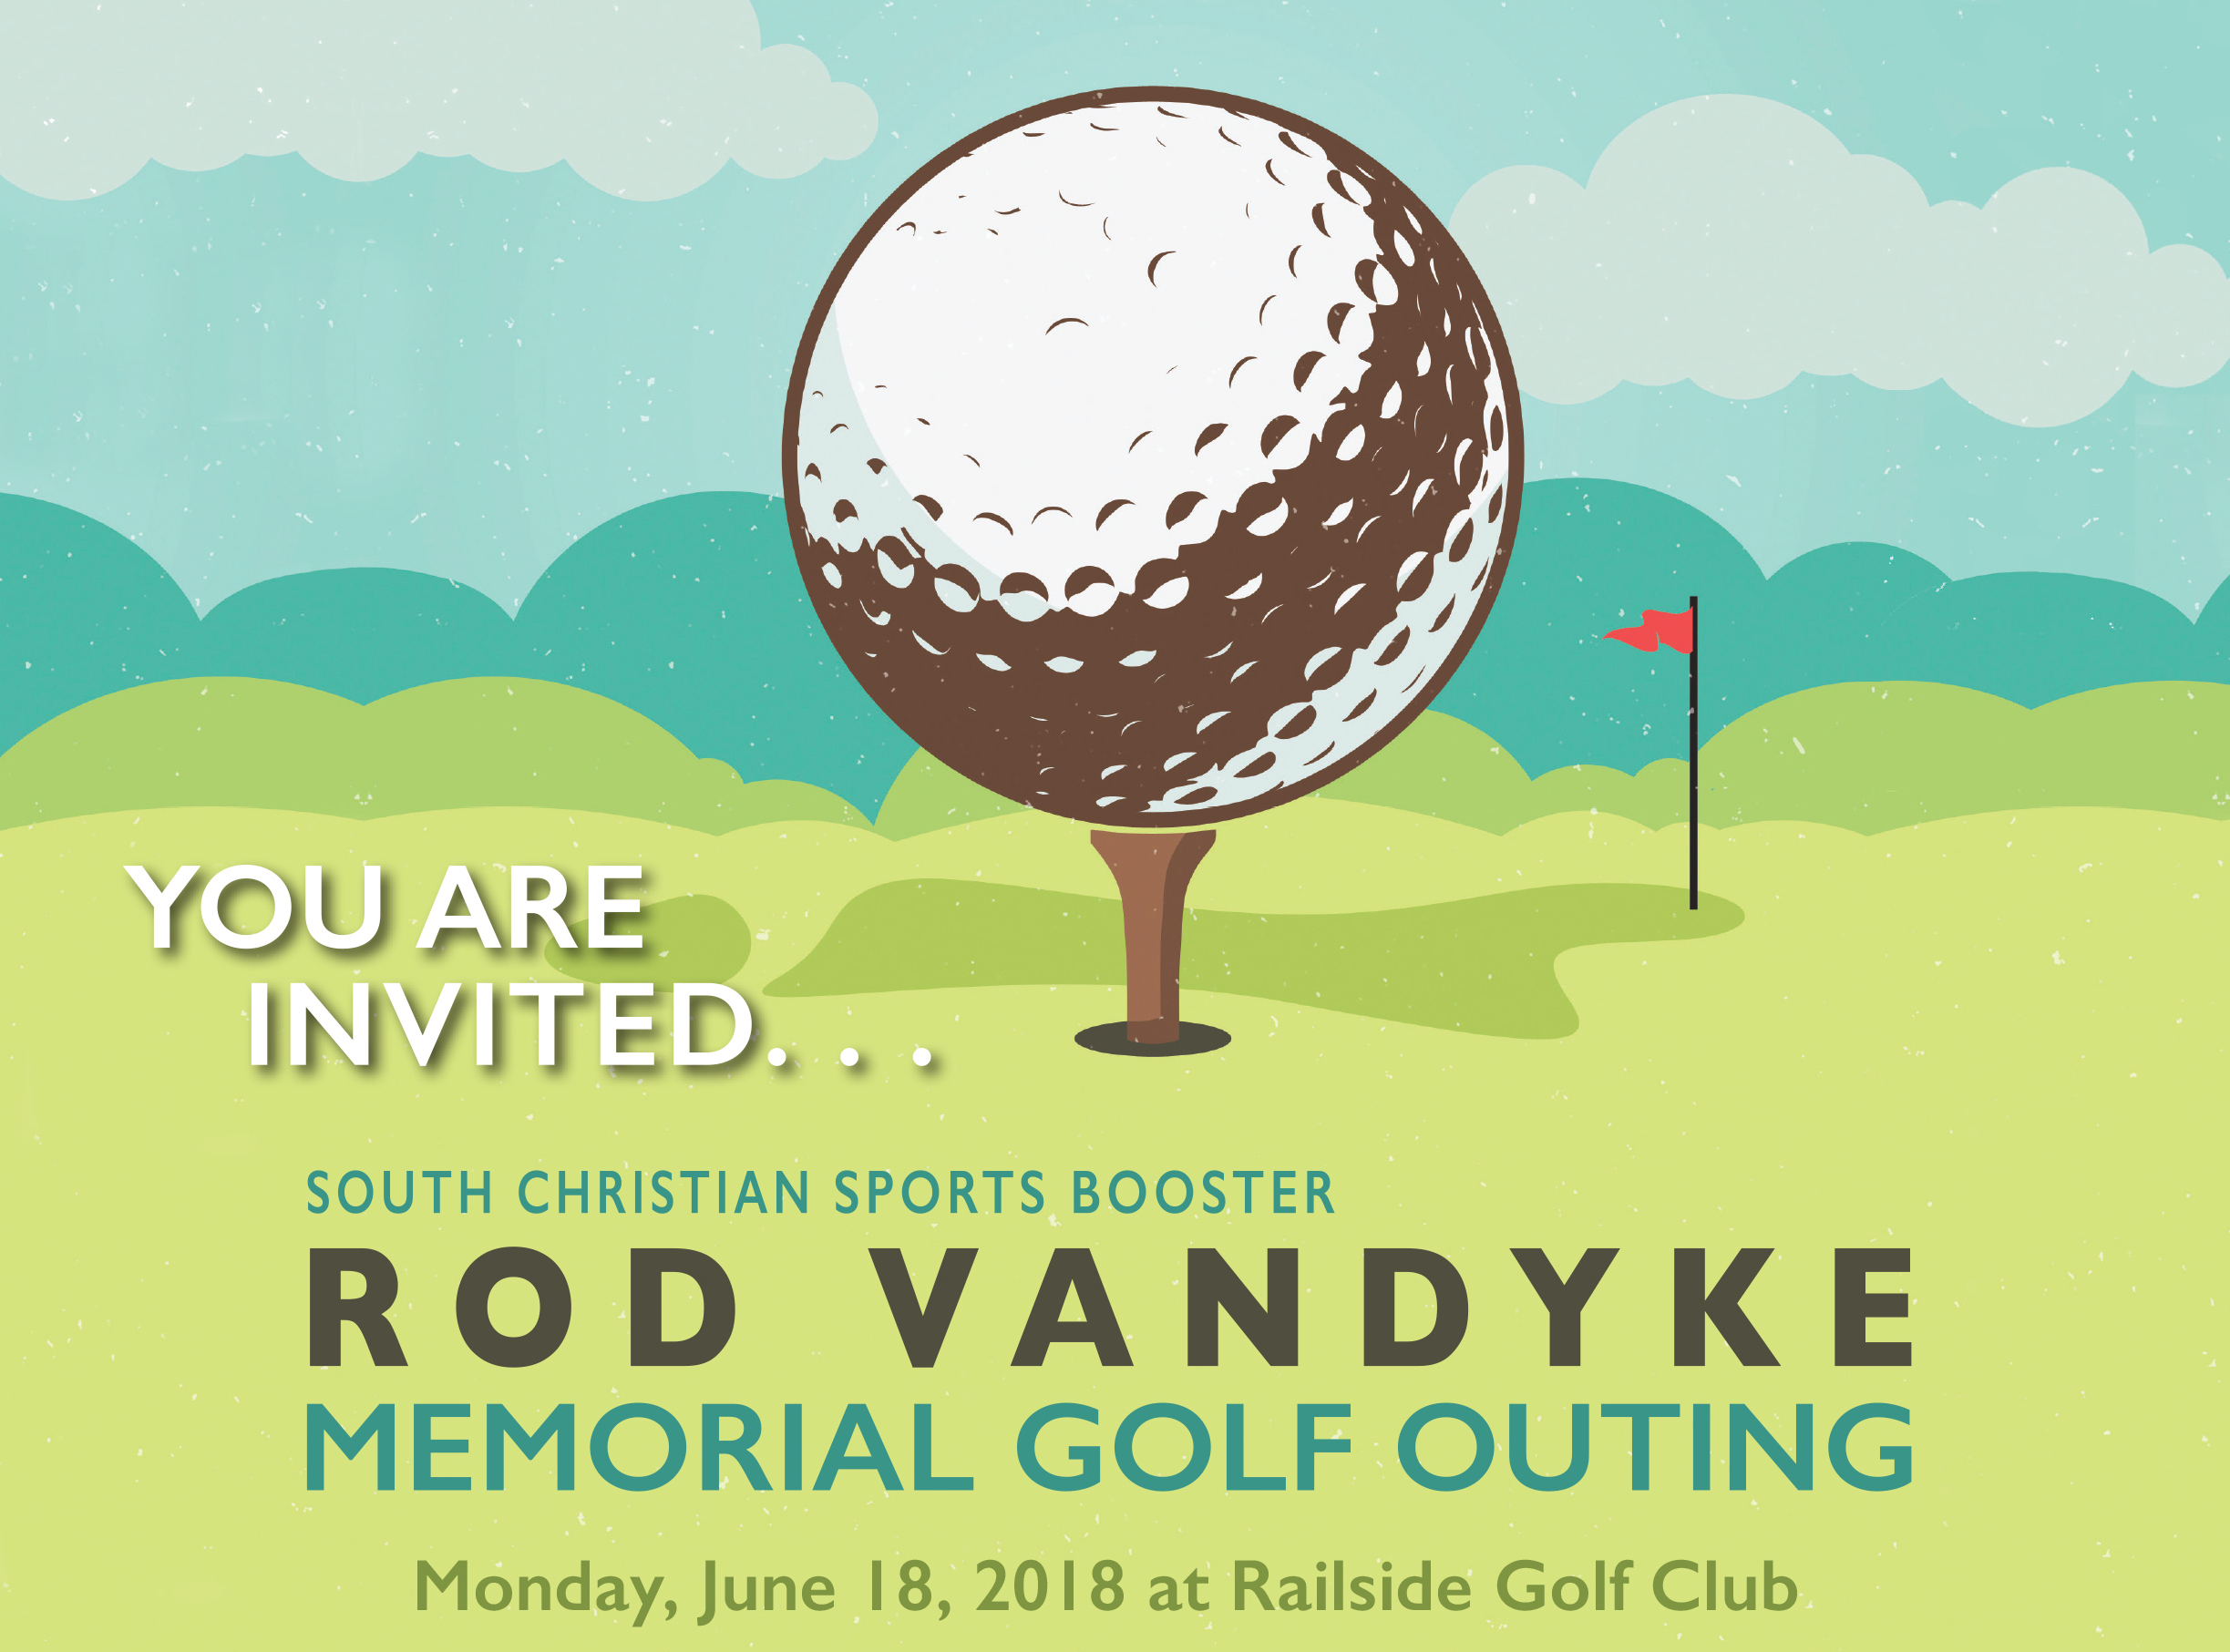 2018 Rod VanDyke Memorial Golf Outing